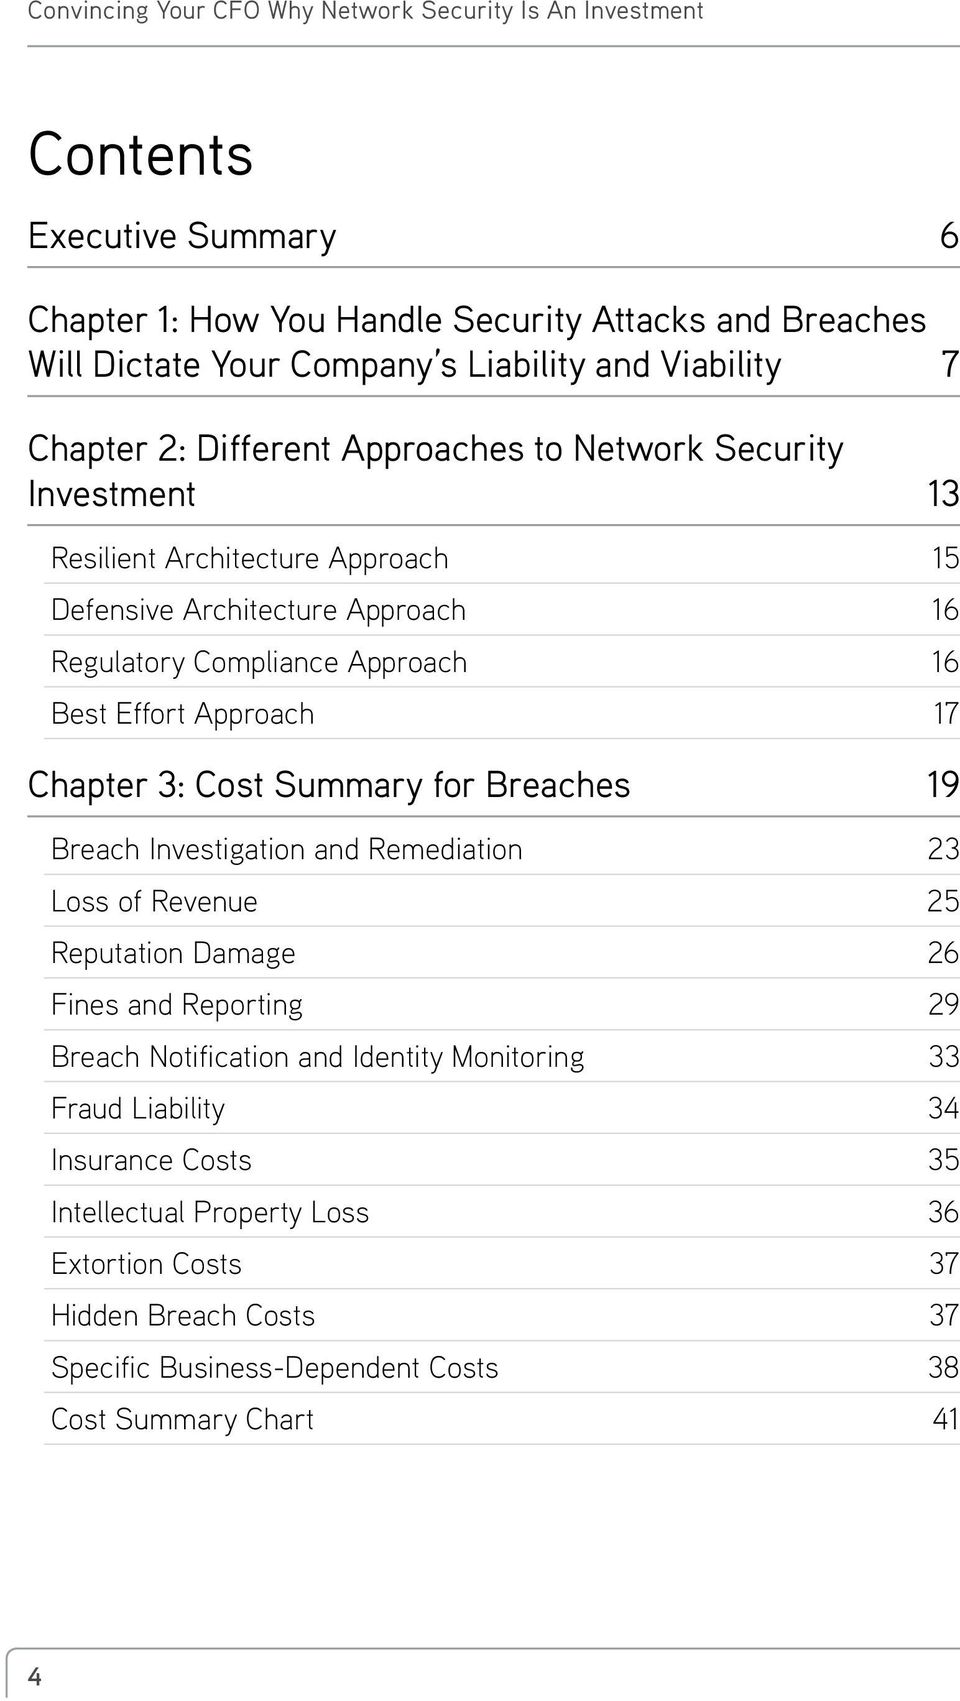 Cost Summary for Breaches 19 Breach Investigation and Remediation 23 Loss of Revenue 25 Reputation Damage 26 Fines and Reporting 29 Breach Notification and Identity